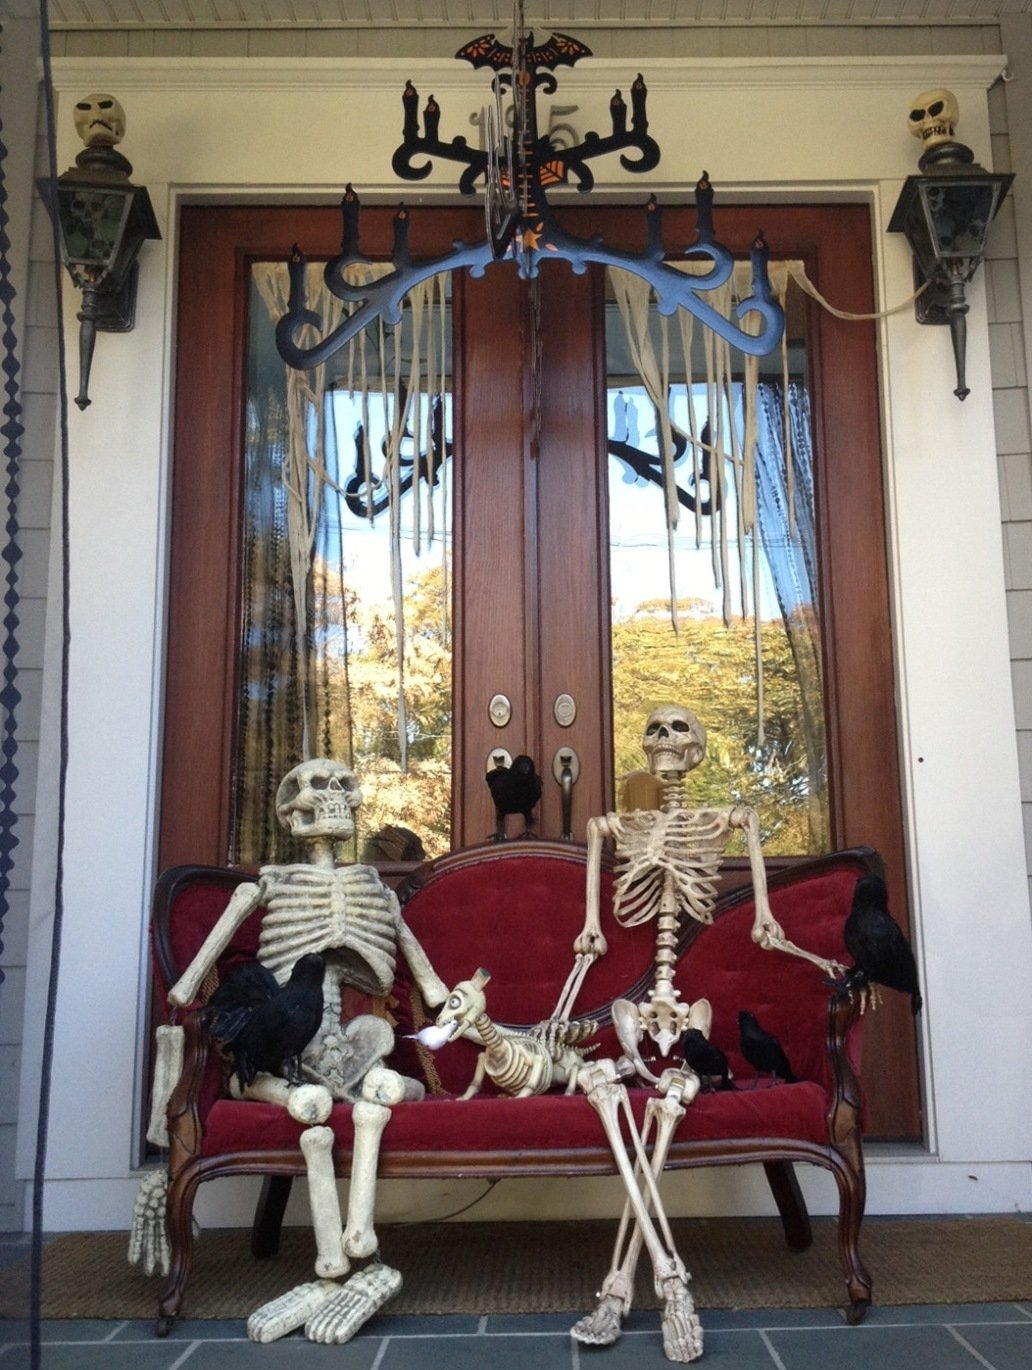 decorating ideas for halloween front porch 10 lovely halloween front porch decorating ideas decorating ideas for halloween QJIQTGG